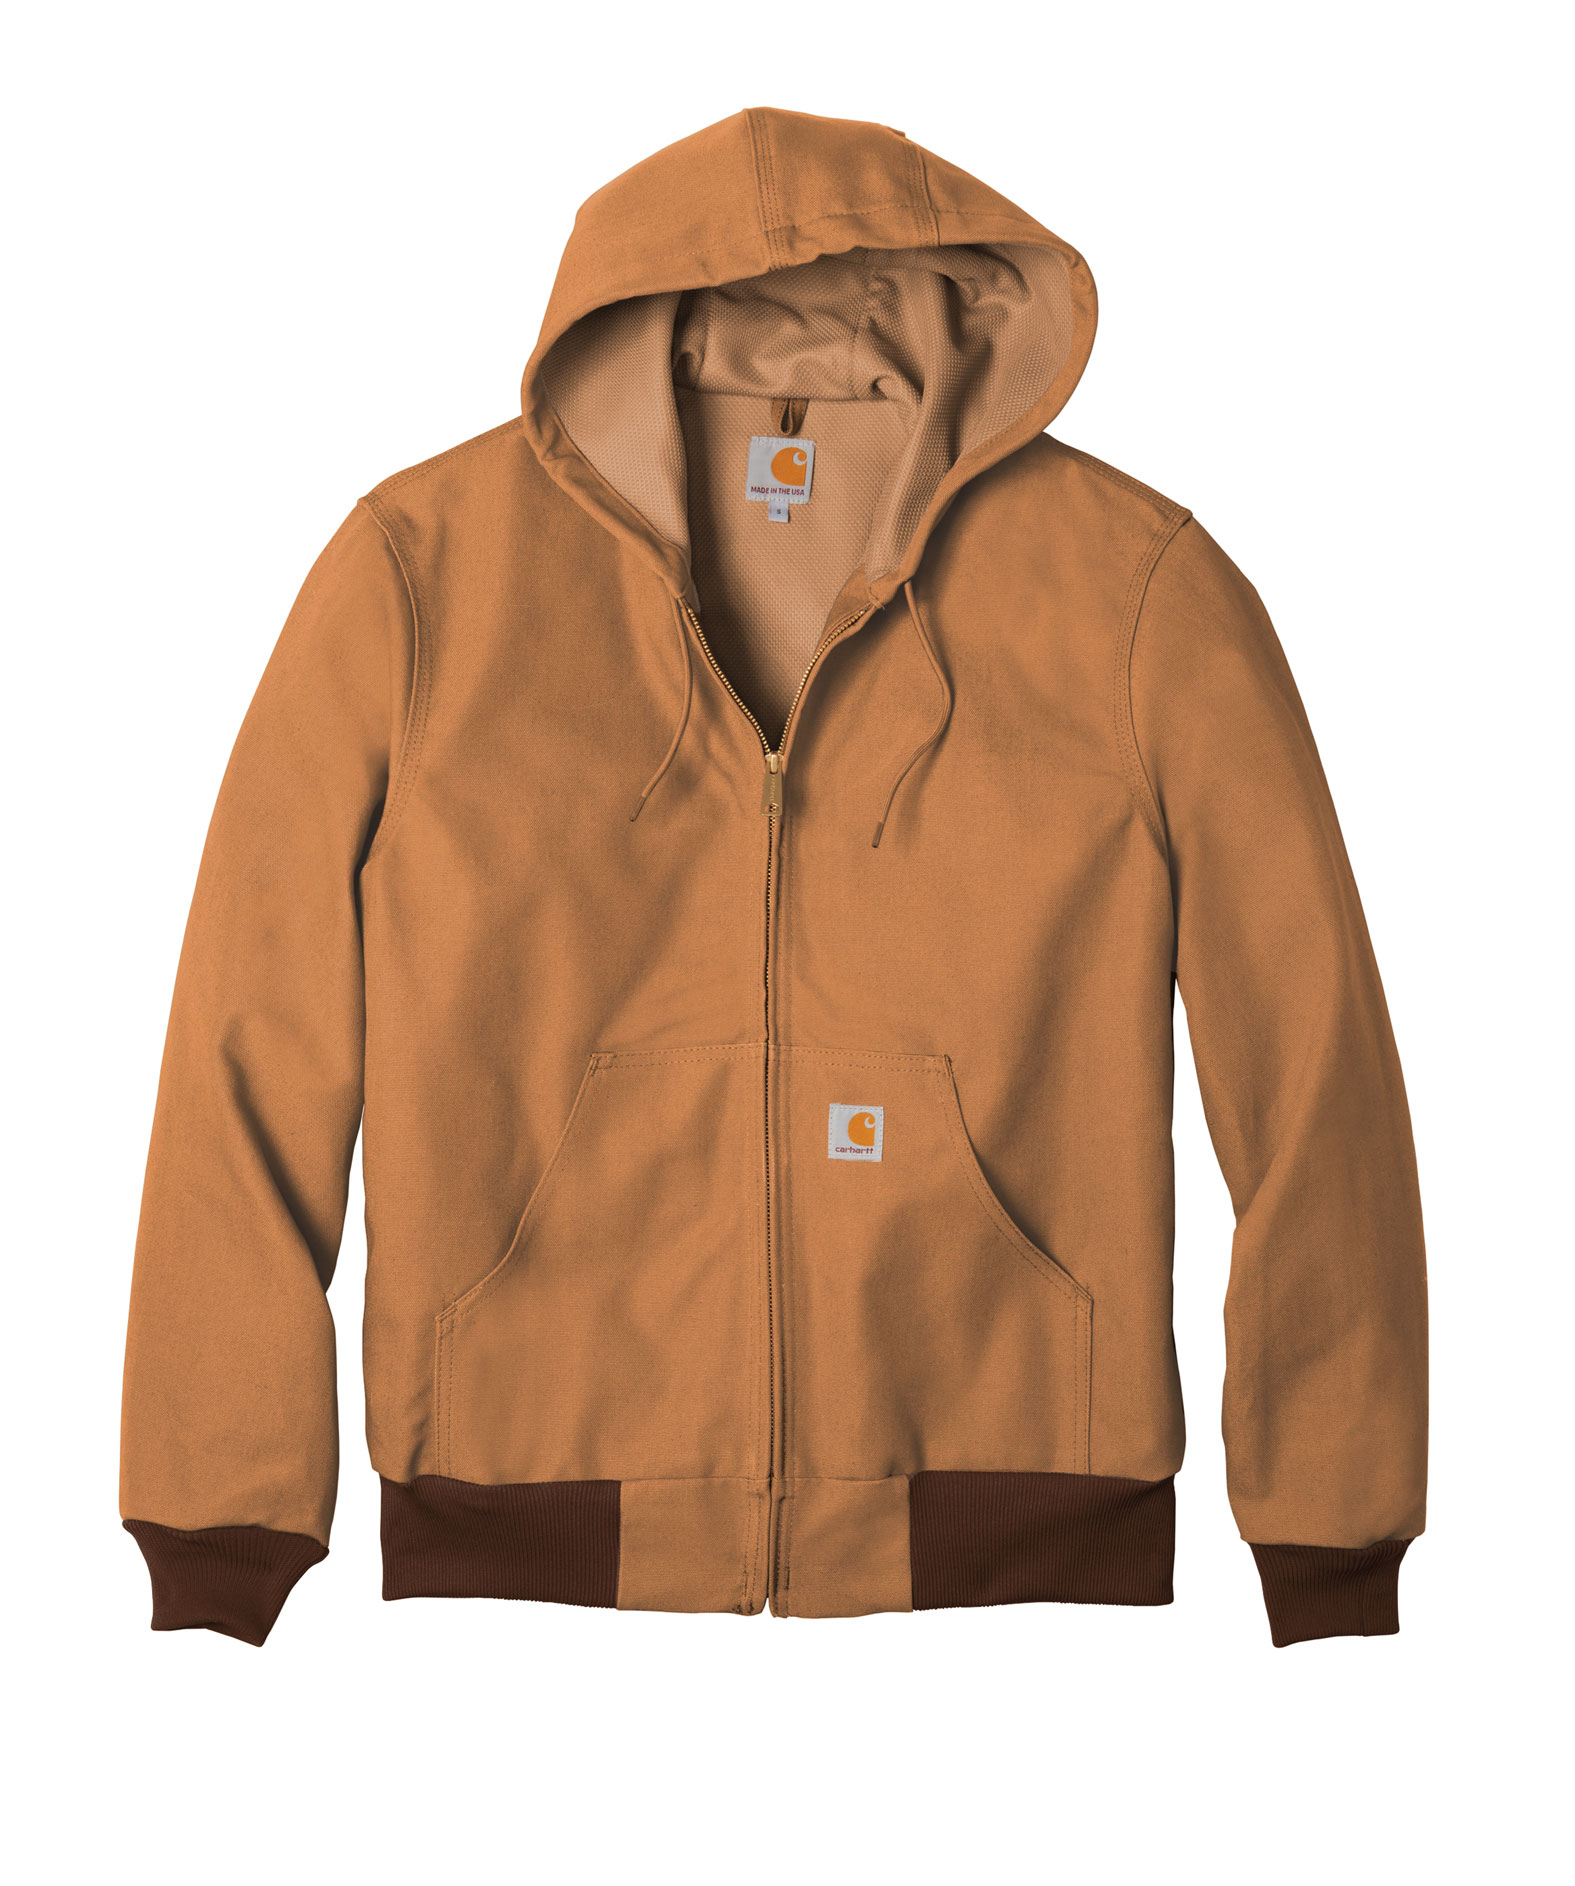 438cbbd06ce Customize Carhartt Tall Duck Active Jacket Water Repellent w Thermal ...